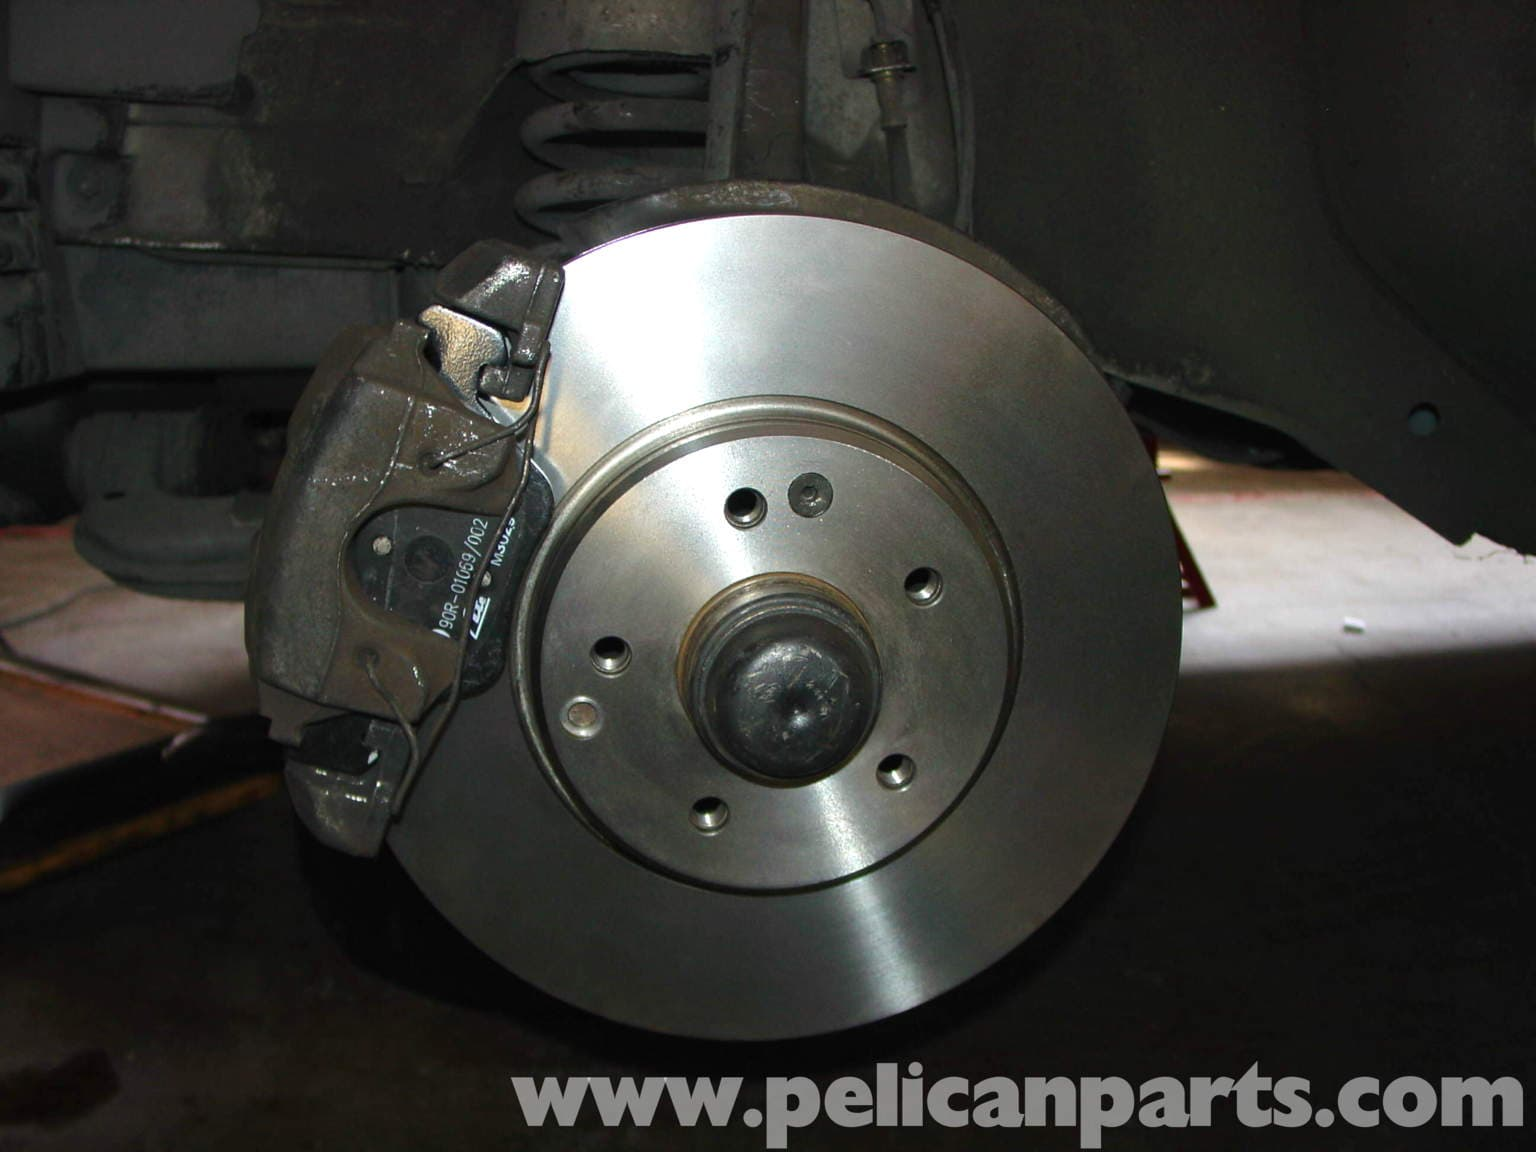 Mercedes benz w210 front brake pad disc replacement 1996 for Mercedes benz rotors replacement